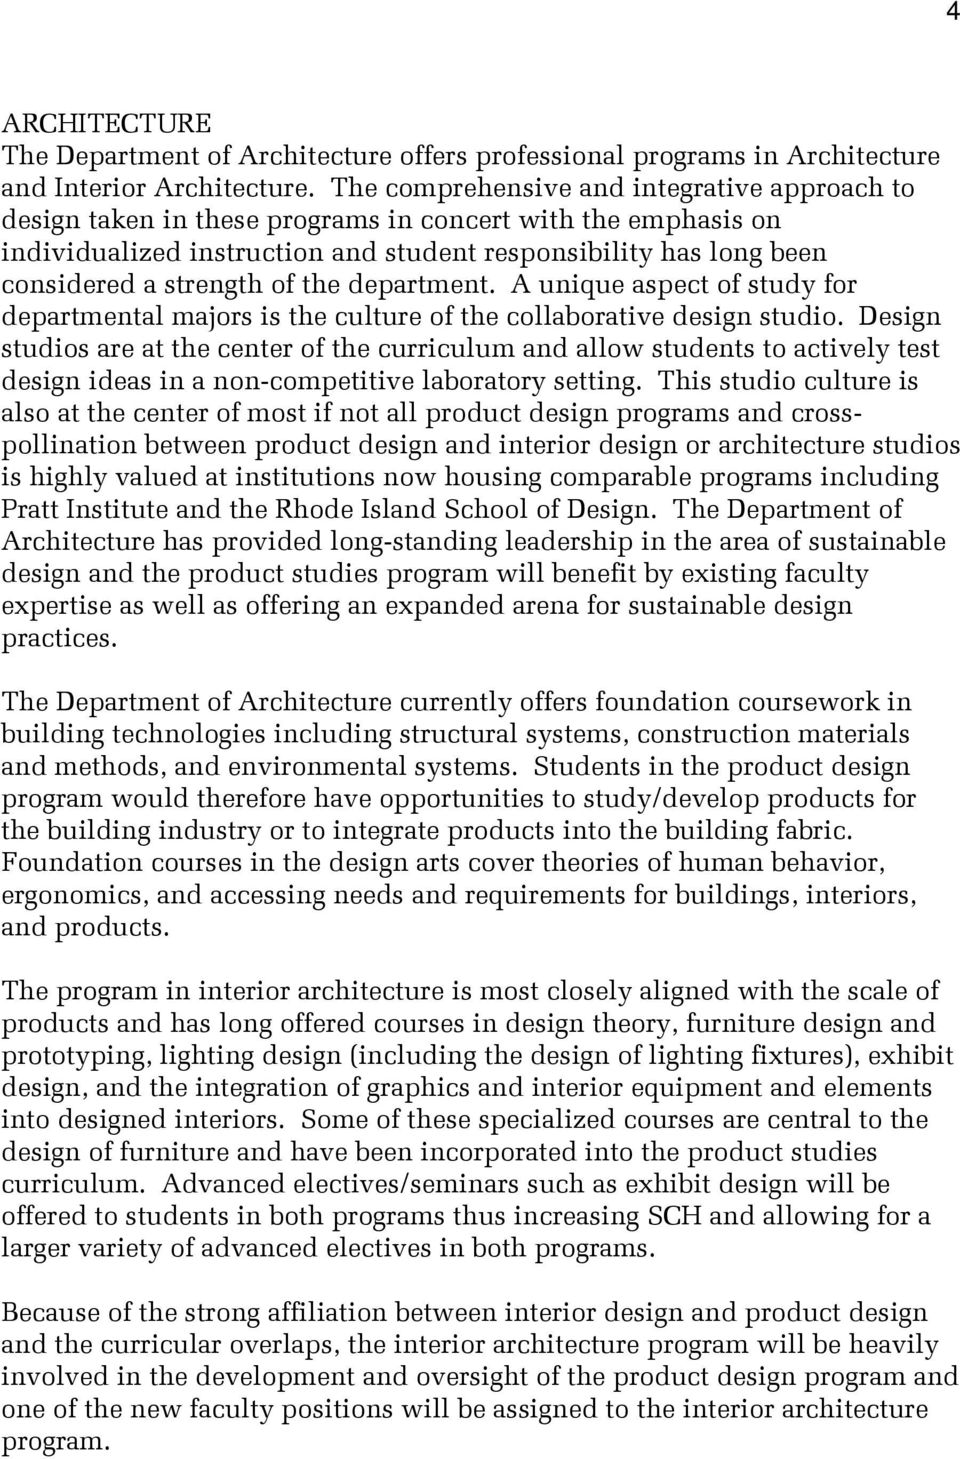 of the department. A unique aspect of study for departmental majors is the culture of the collaborative design studio.